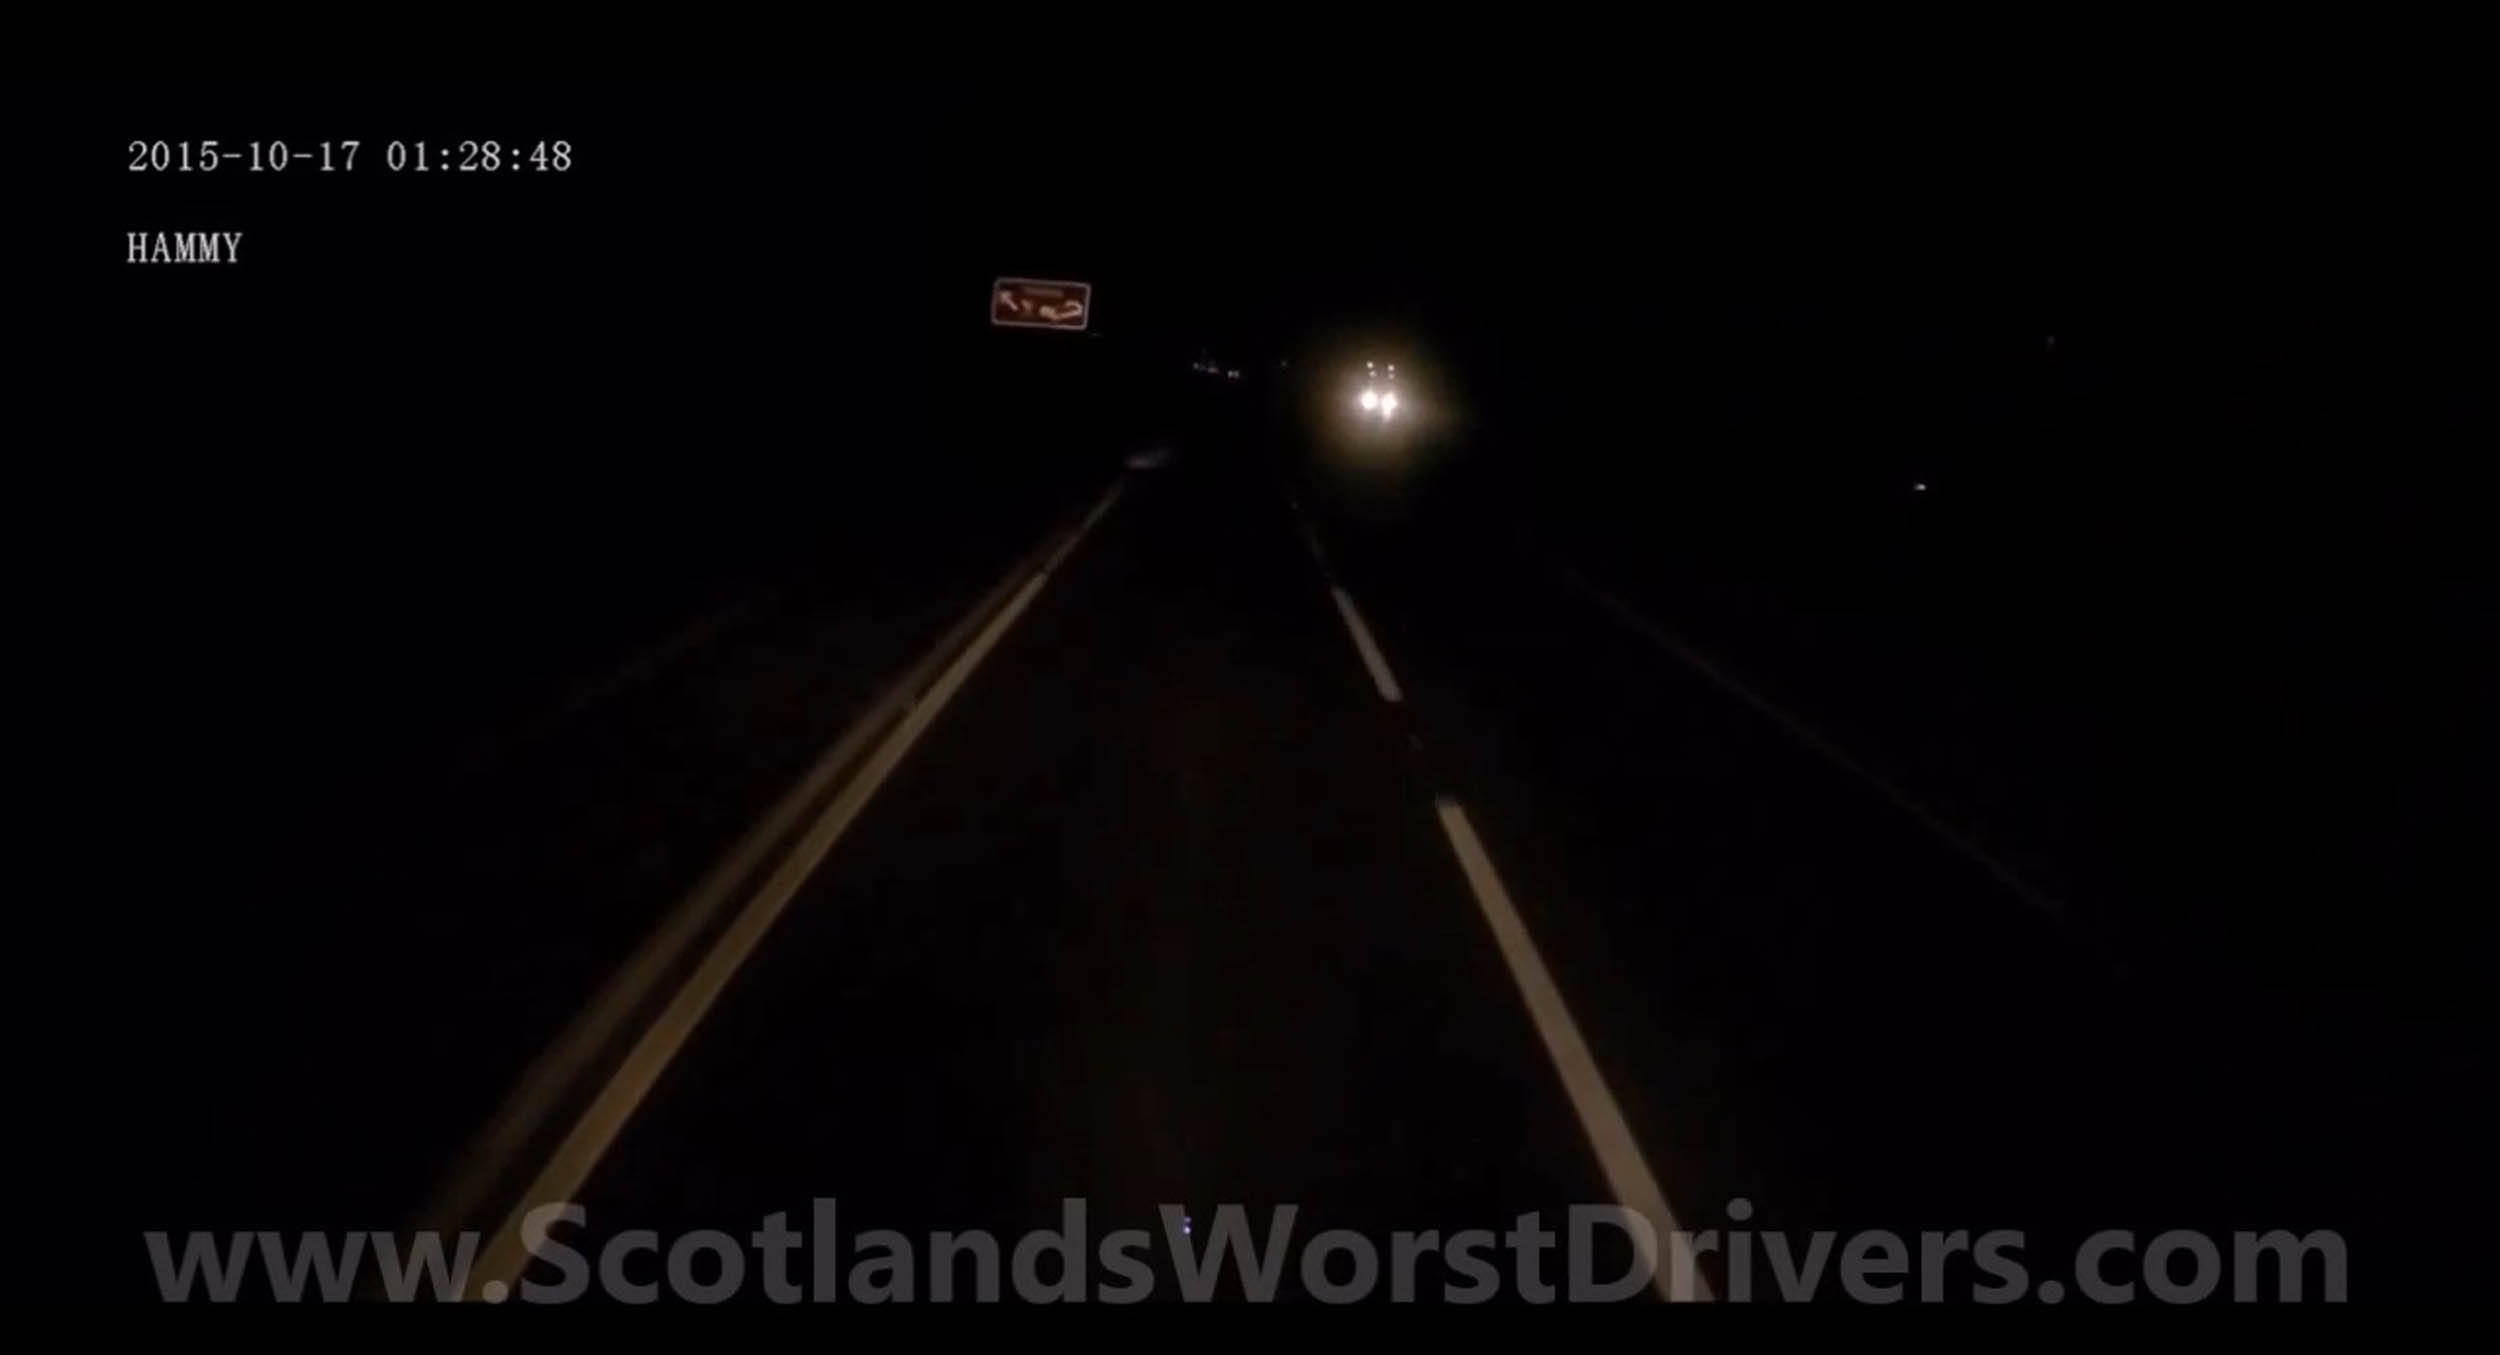 Images and video must be credited Scotland's Worst Drivers/Deadline News HAIR-raising footage shows the moment a trucker swerved to avoid smashing into the carcass of a cow on a busy dual carriageway. Night-time dashcam footage shows the truck driving on the A9 in Perth and Kinross when the hazard lights of a vehicle ahead become visible. The dead cow suddenly appears in the slow lane forcing the driver to swerve into the fast lane to avoid disaster. The animal had been hit moments before by an HGV which was forced to stop with half its bumper missing. The incident took place in the early hours of Saturday morning as driver James Hammond was approaching Auchterarder. The footage was uploaded online by website, Scotland?s Worst Drivers.